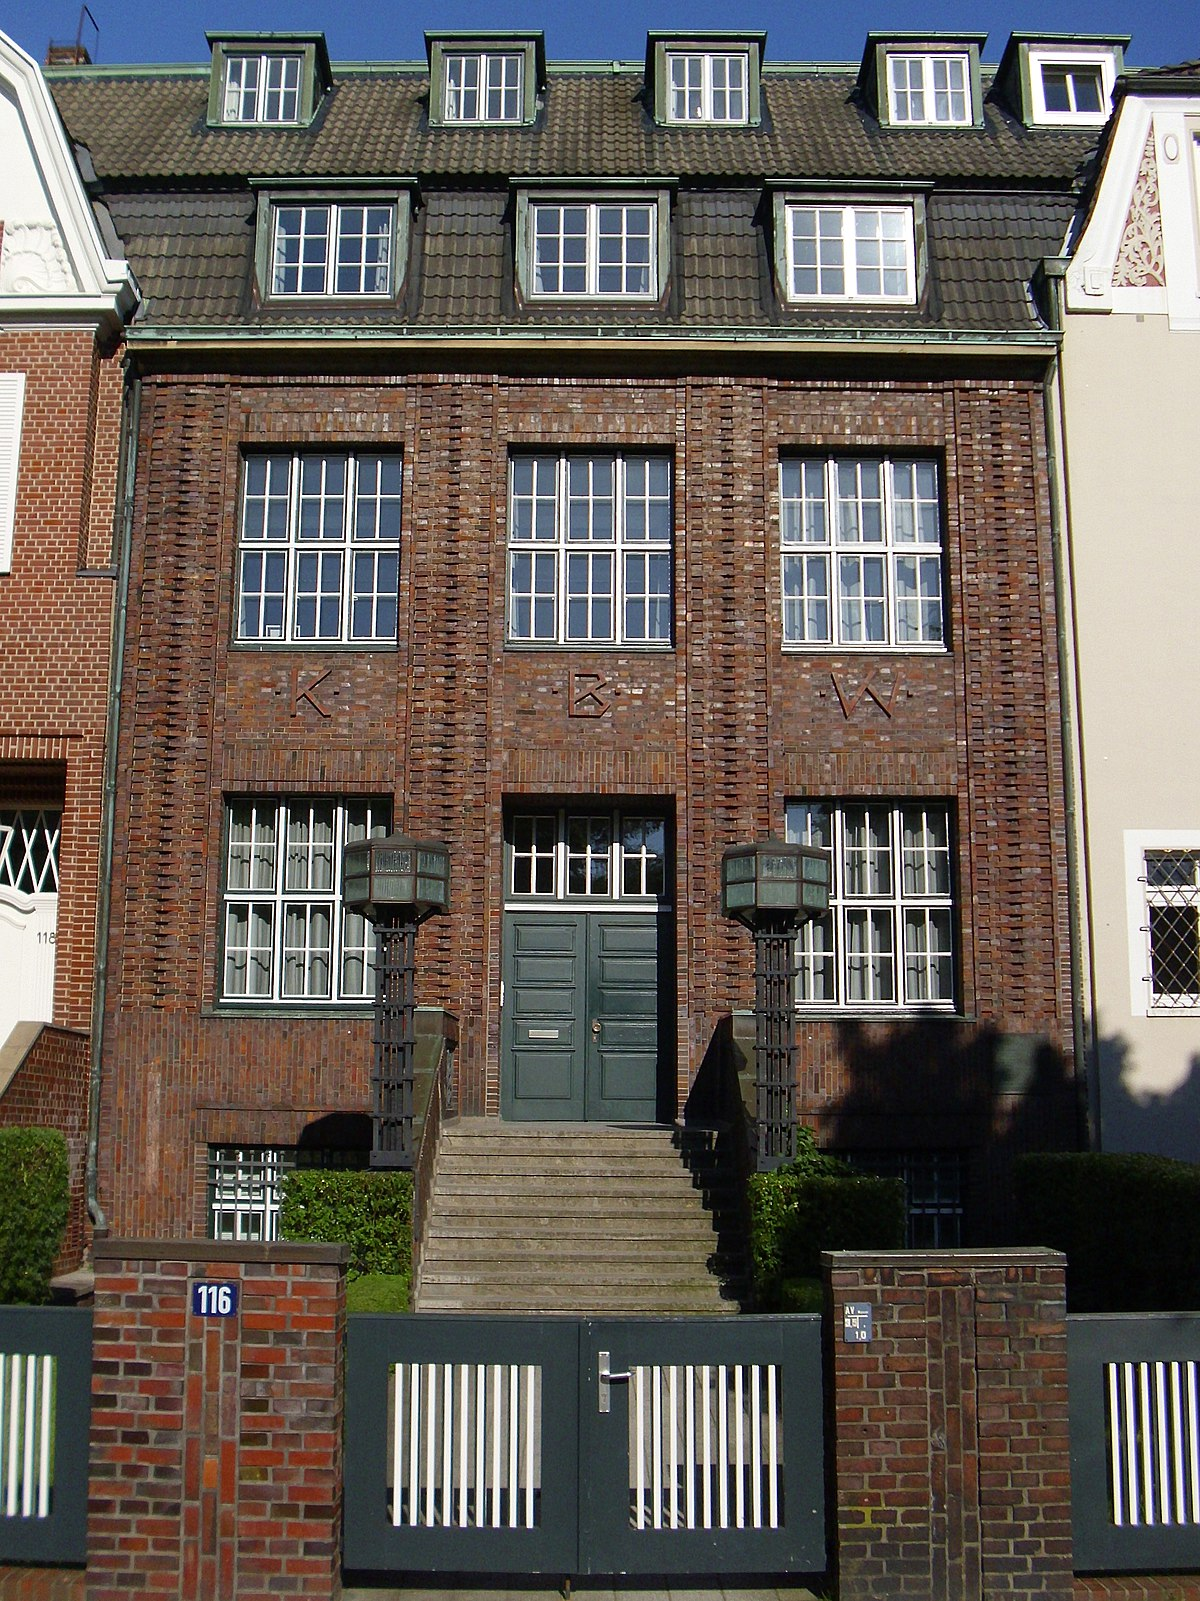 Warburg haus hamburg wikipedia for Haus hamburg